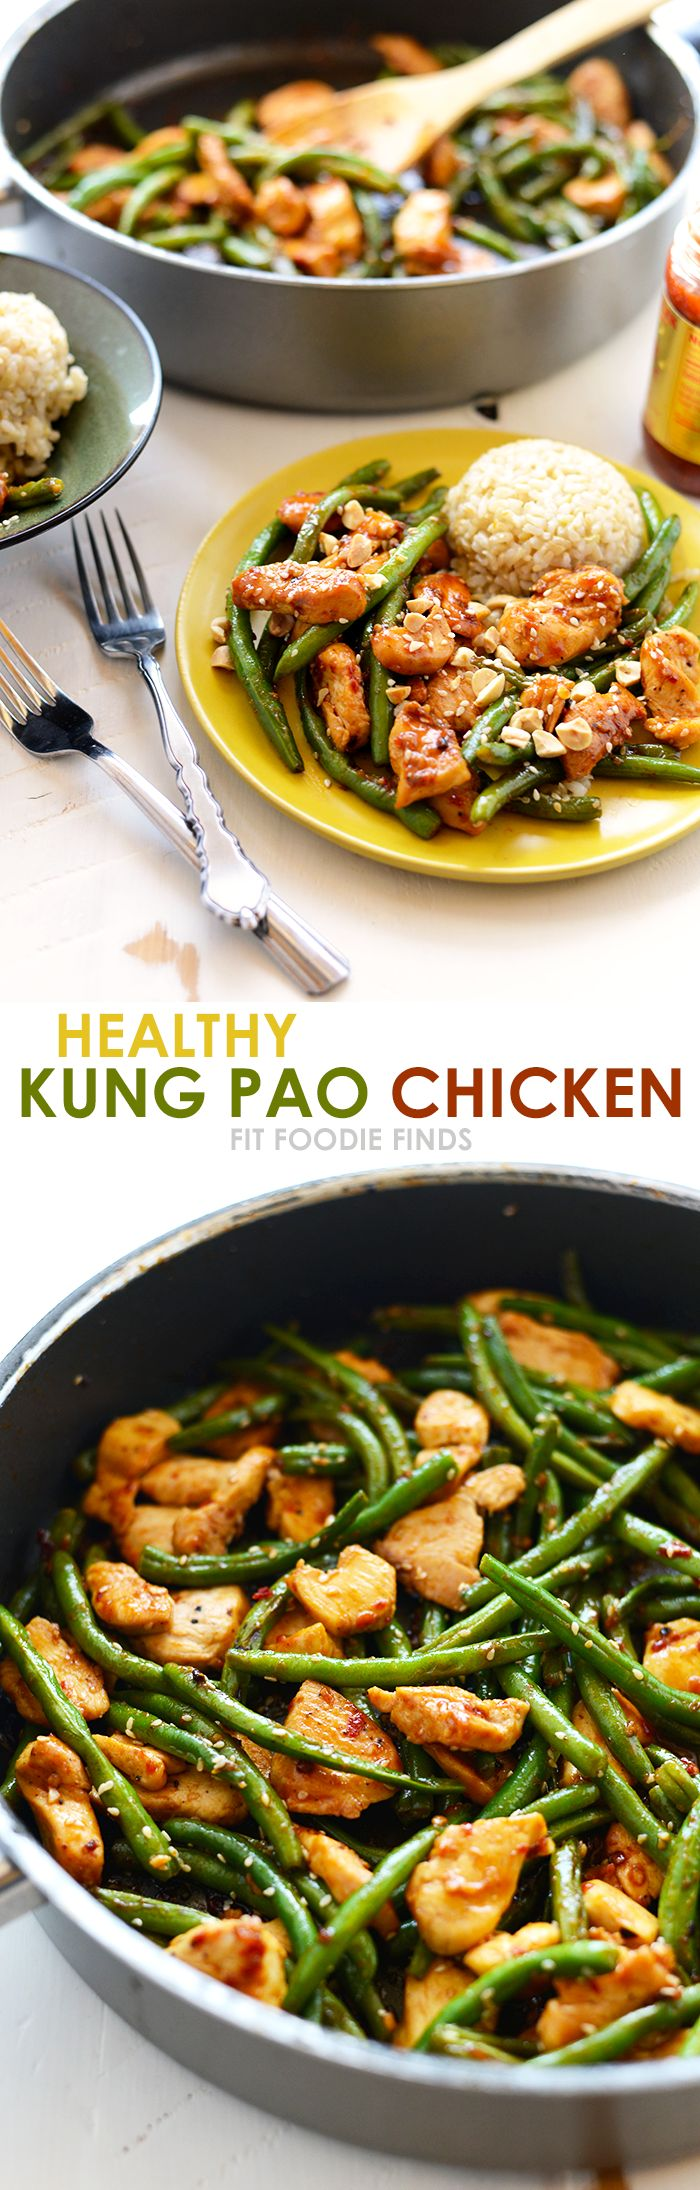 Clean Eating Kung Pao Chicken